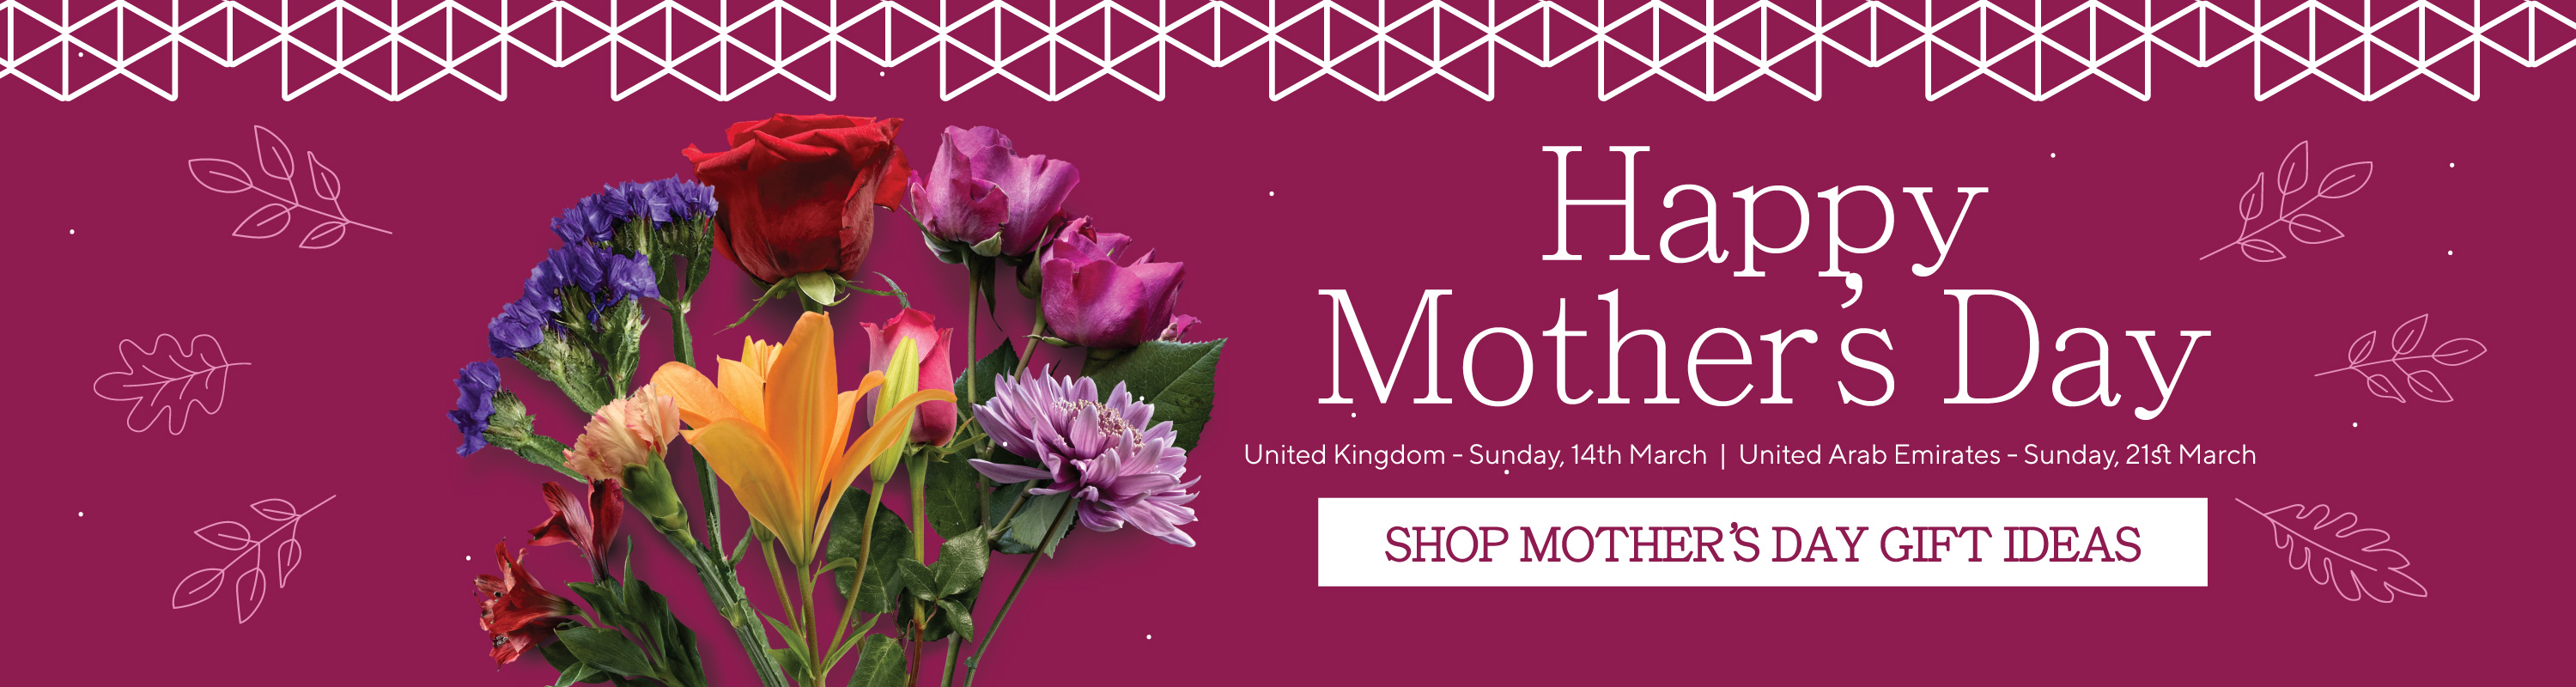 Mothers Day Homepage banner 21